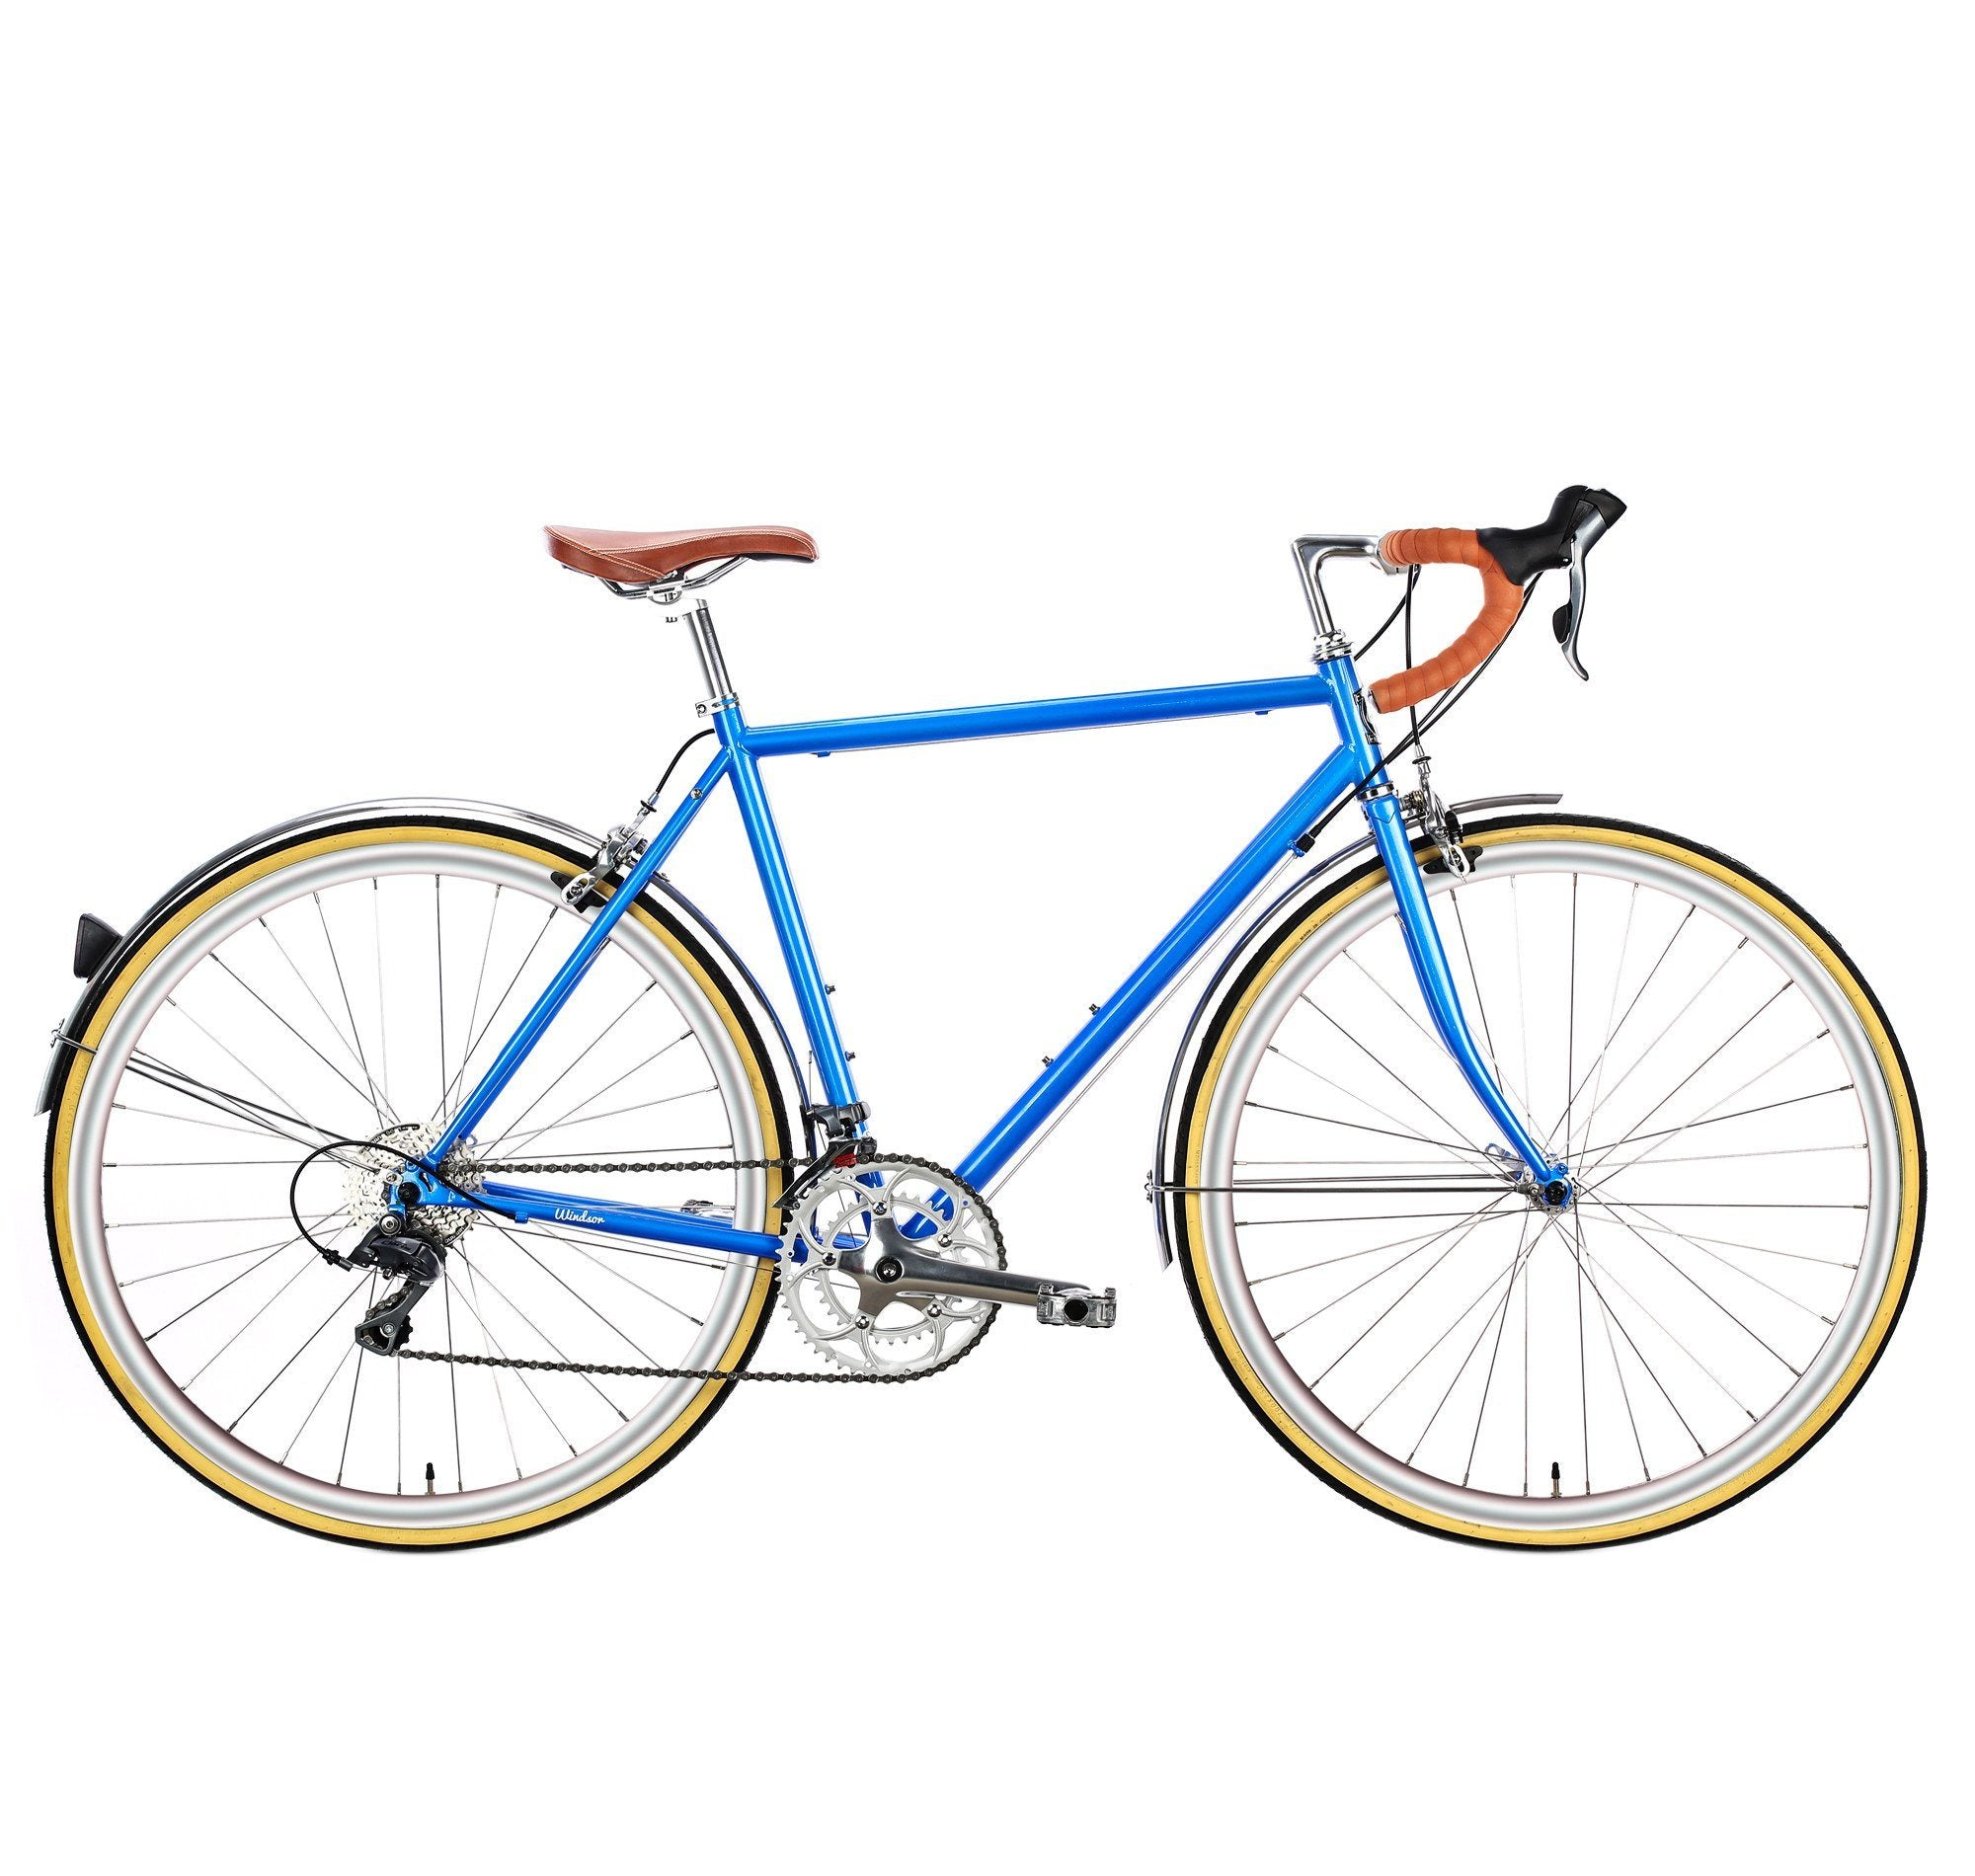 6ku 16 Speed Classic Road Bike 6ku Bikes